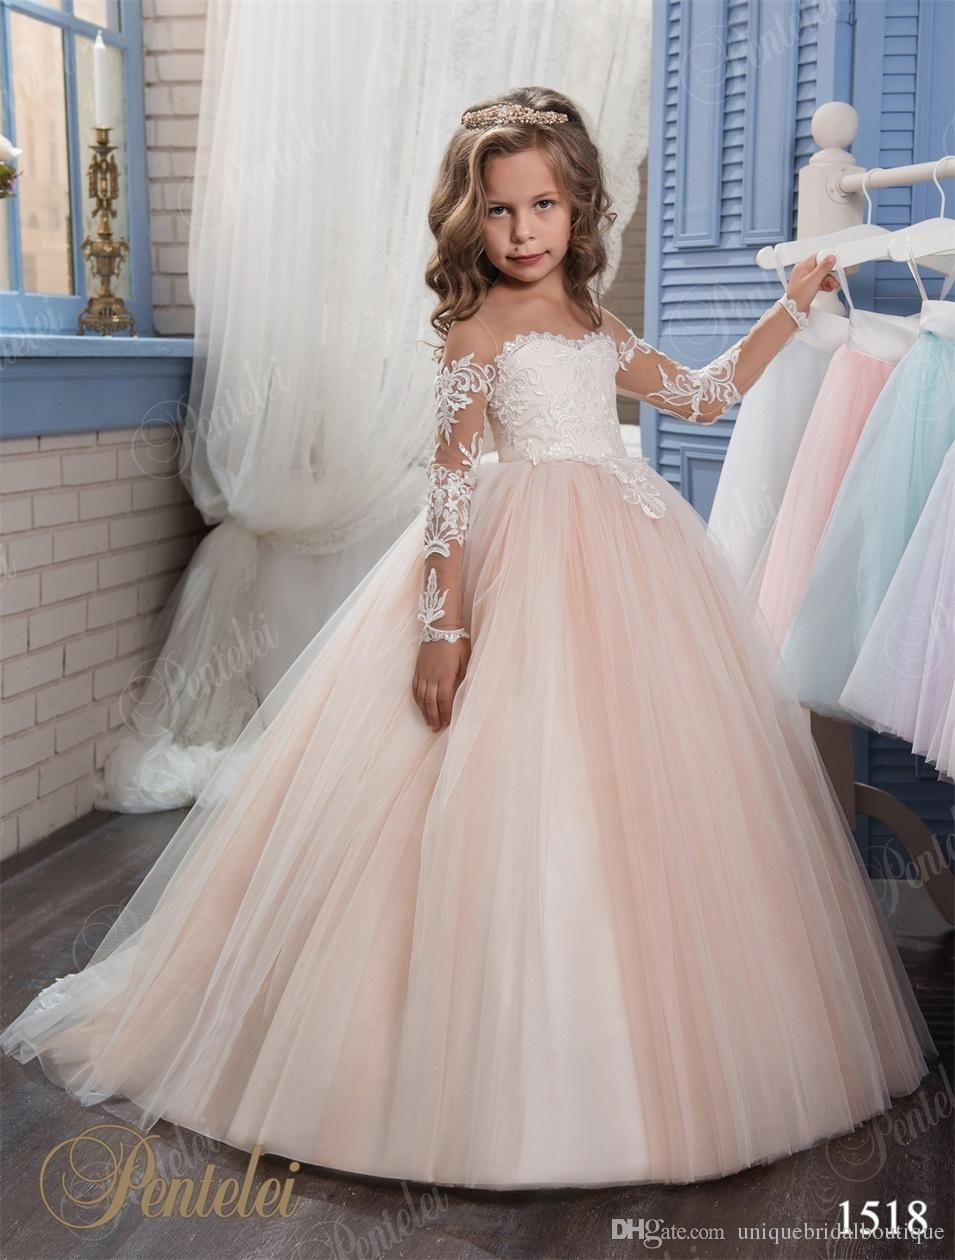 d739043ca4b83 Kids Wedding Dresses 2017 Pentelei with Illusion Long Sleeves and ...